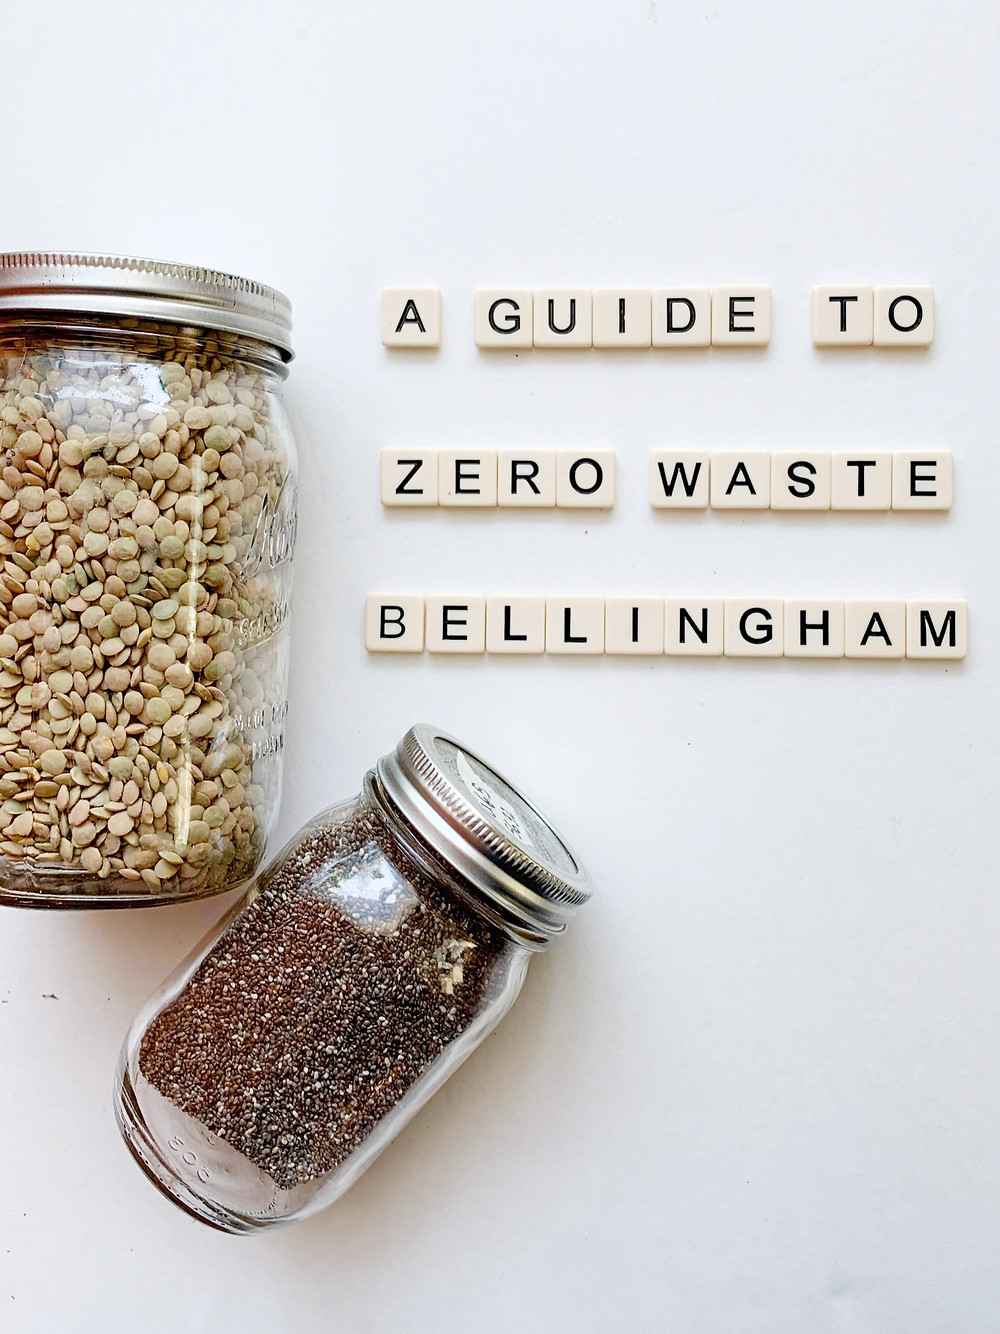 bulk jars on a white background saying A Guide to Zero Waste Bellingham